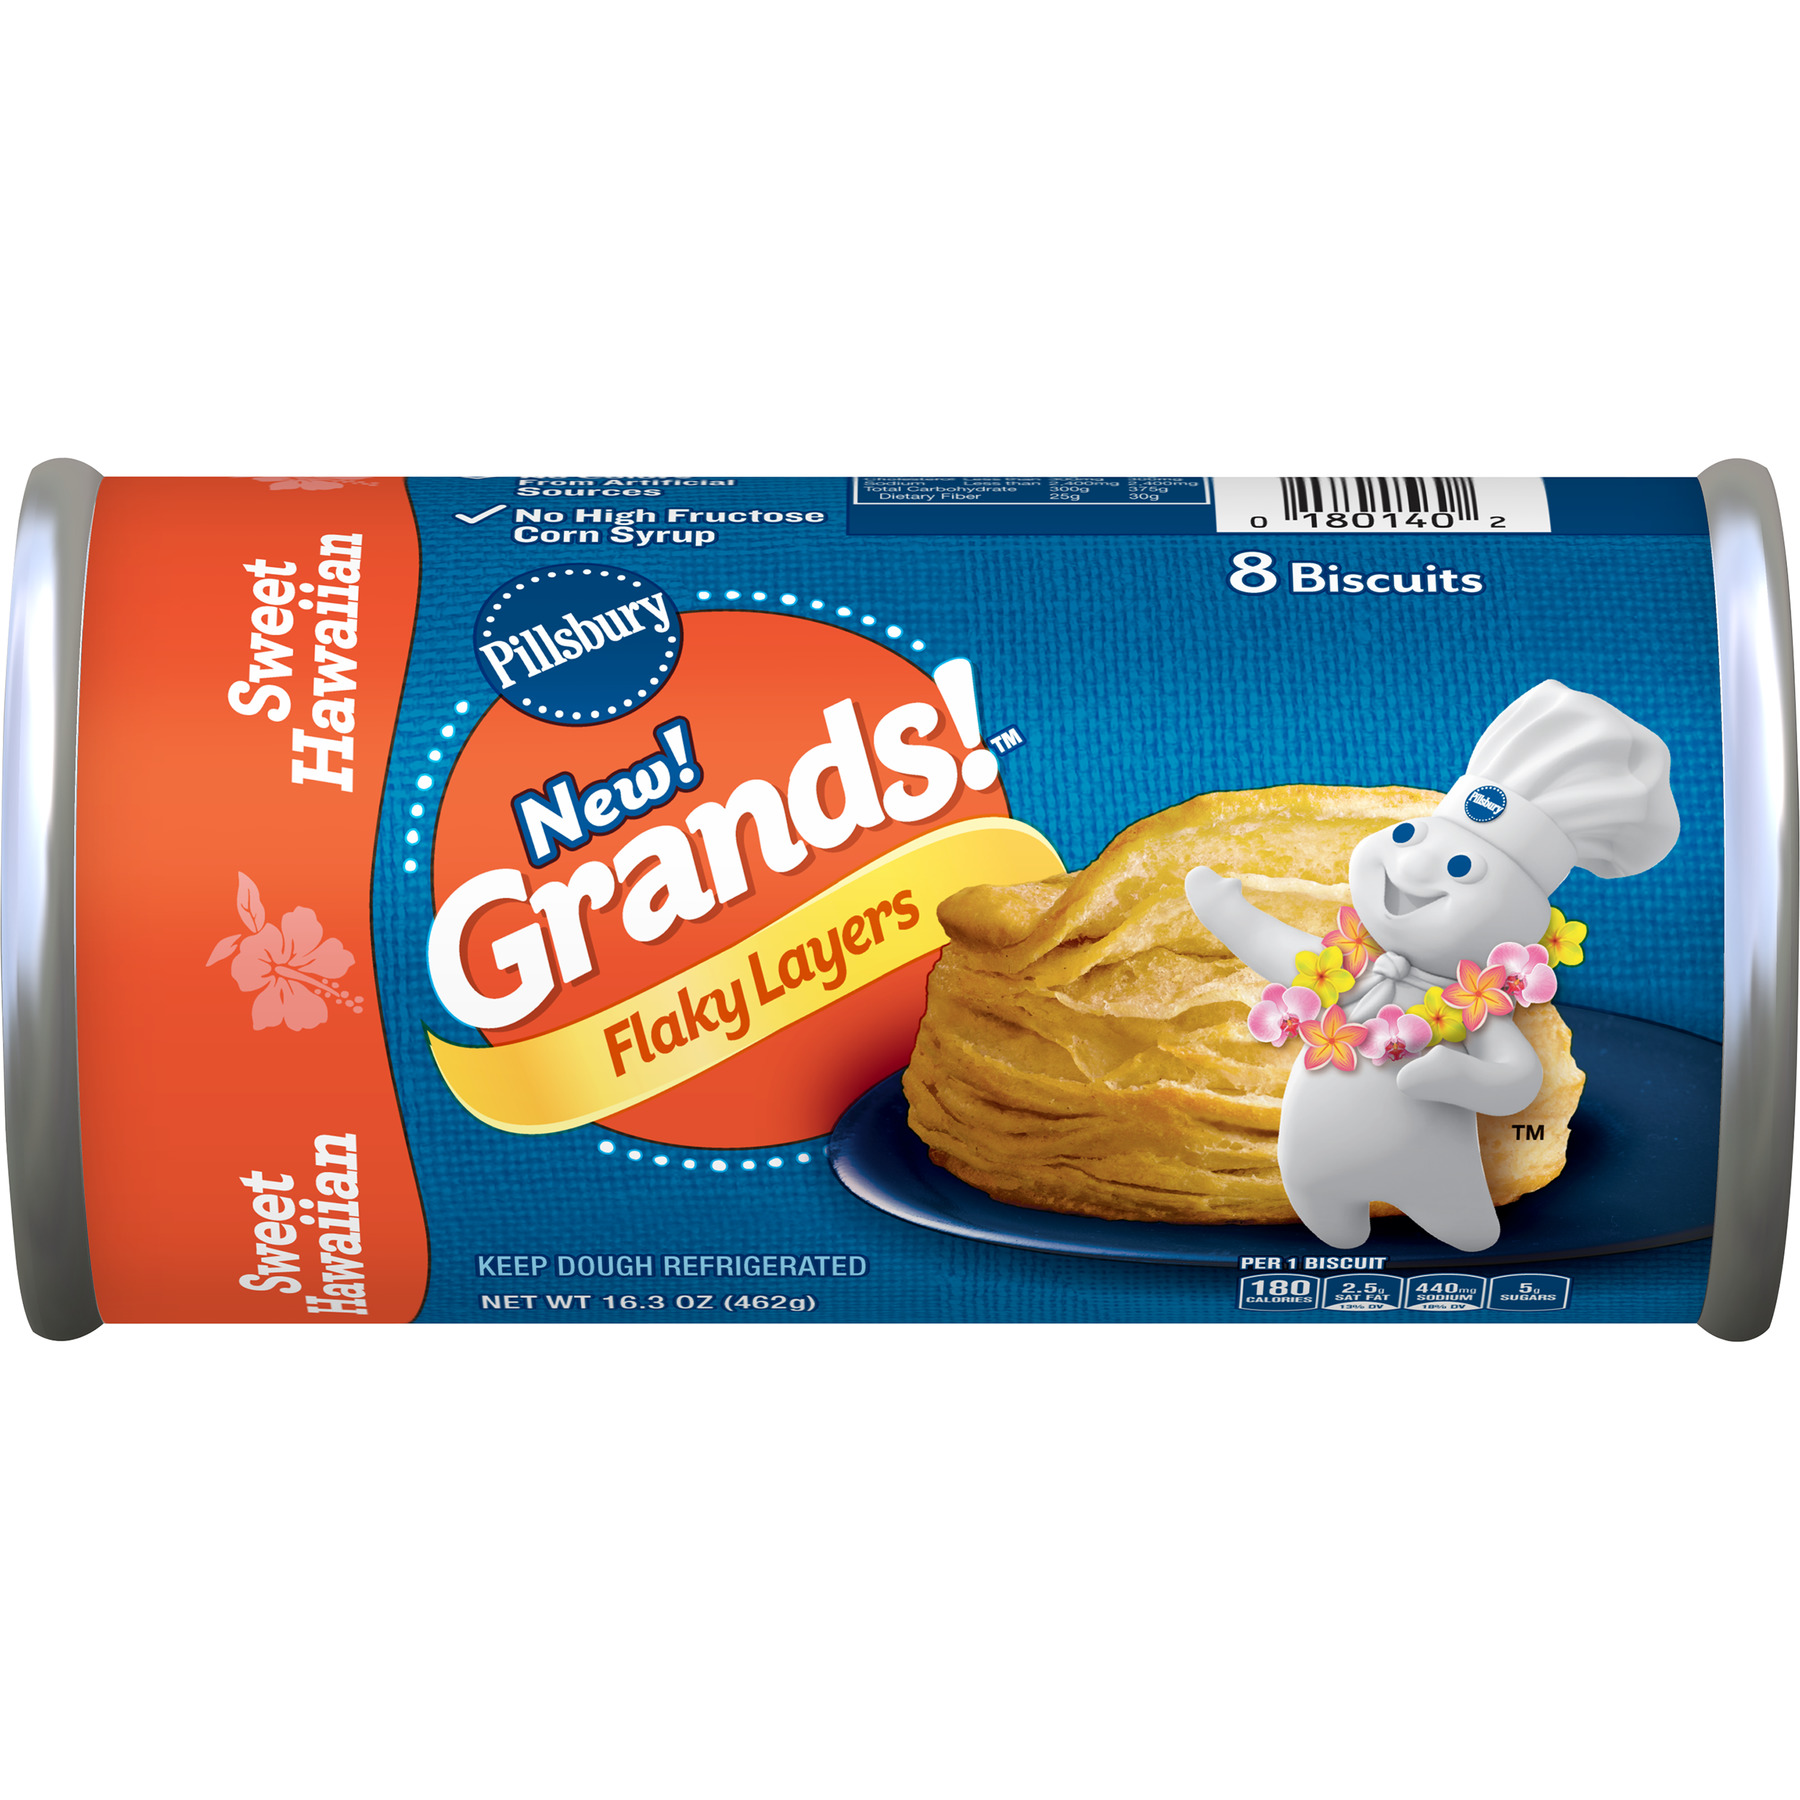 Pillsbury Sweet Hawaiian Flaky Grands! Biscuit 8 ct, 16.3 oz